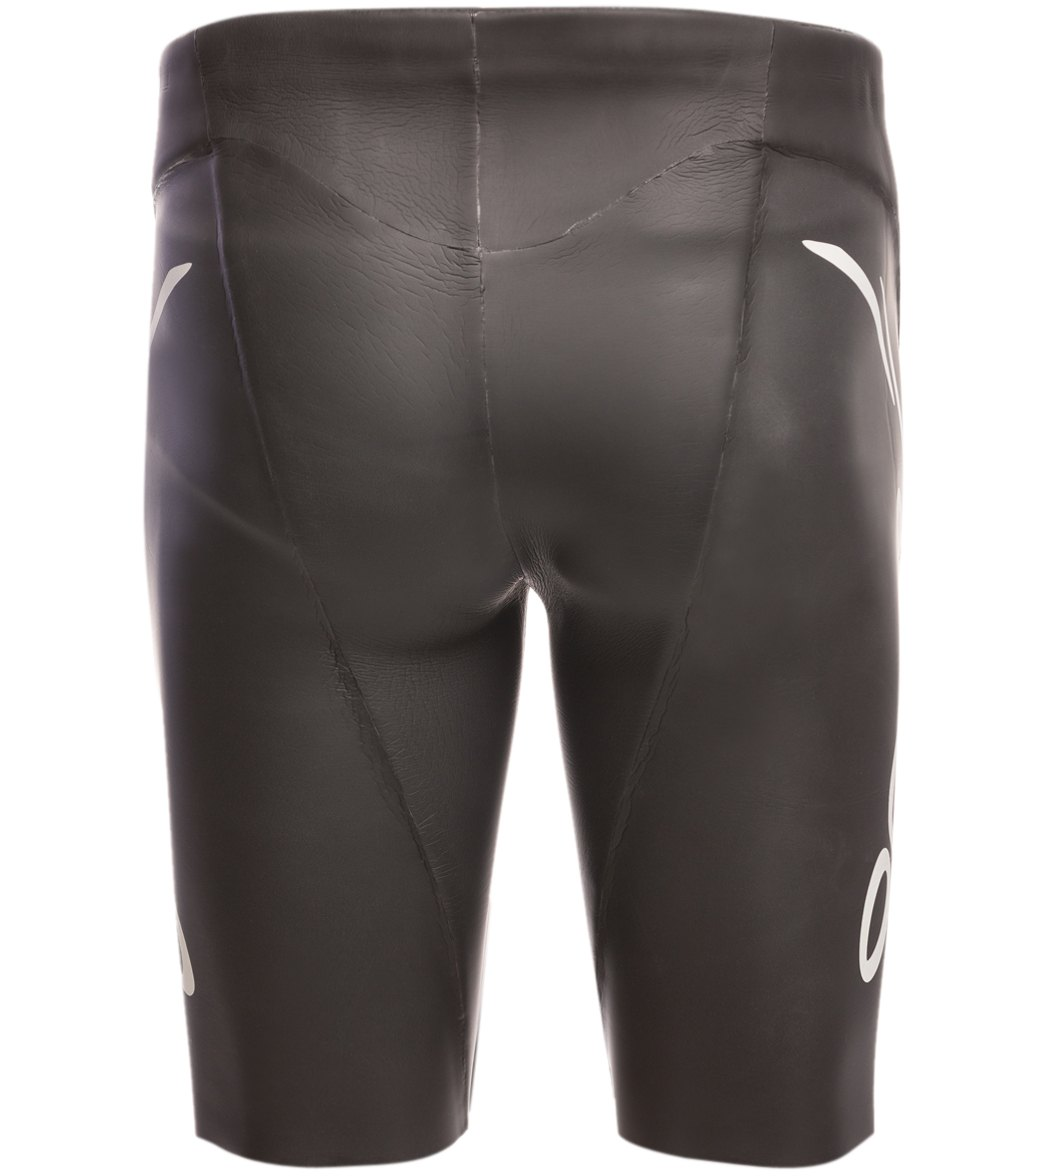 3dbe6d3446f Orca Neoprene Buoyancy Short at SwimOutlet.com - Free Shipping